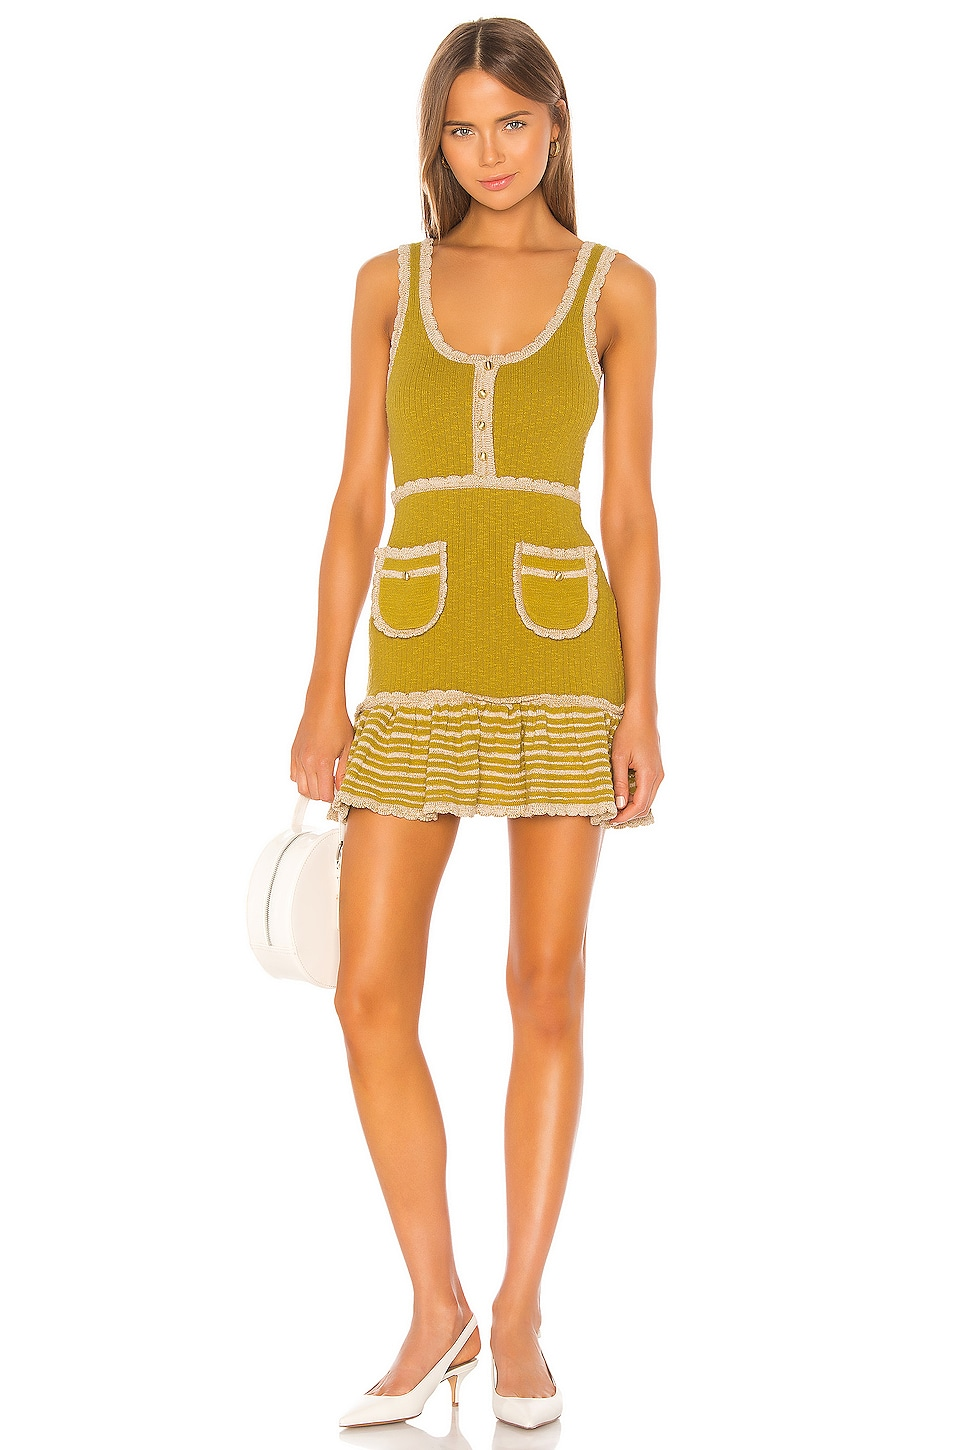 Alice McCall Heaven Help Mini Dress in Tigers Eye